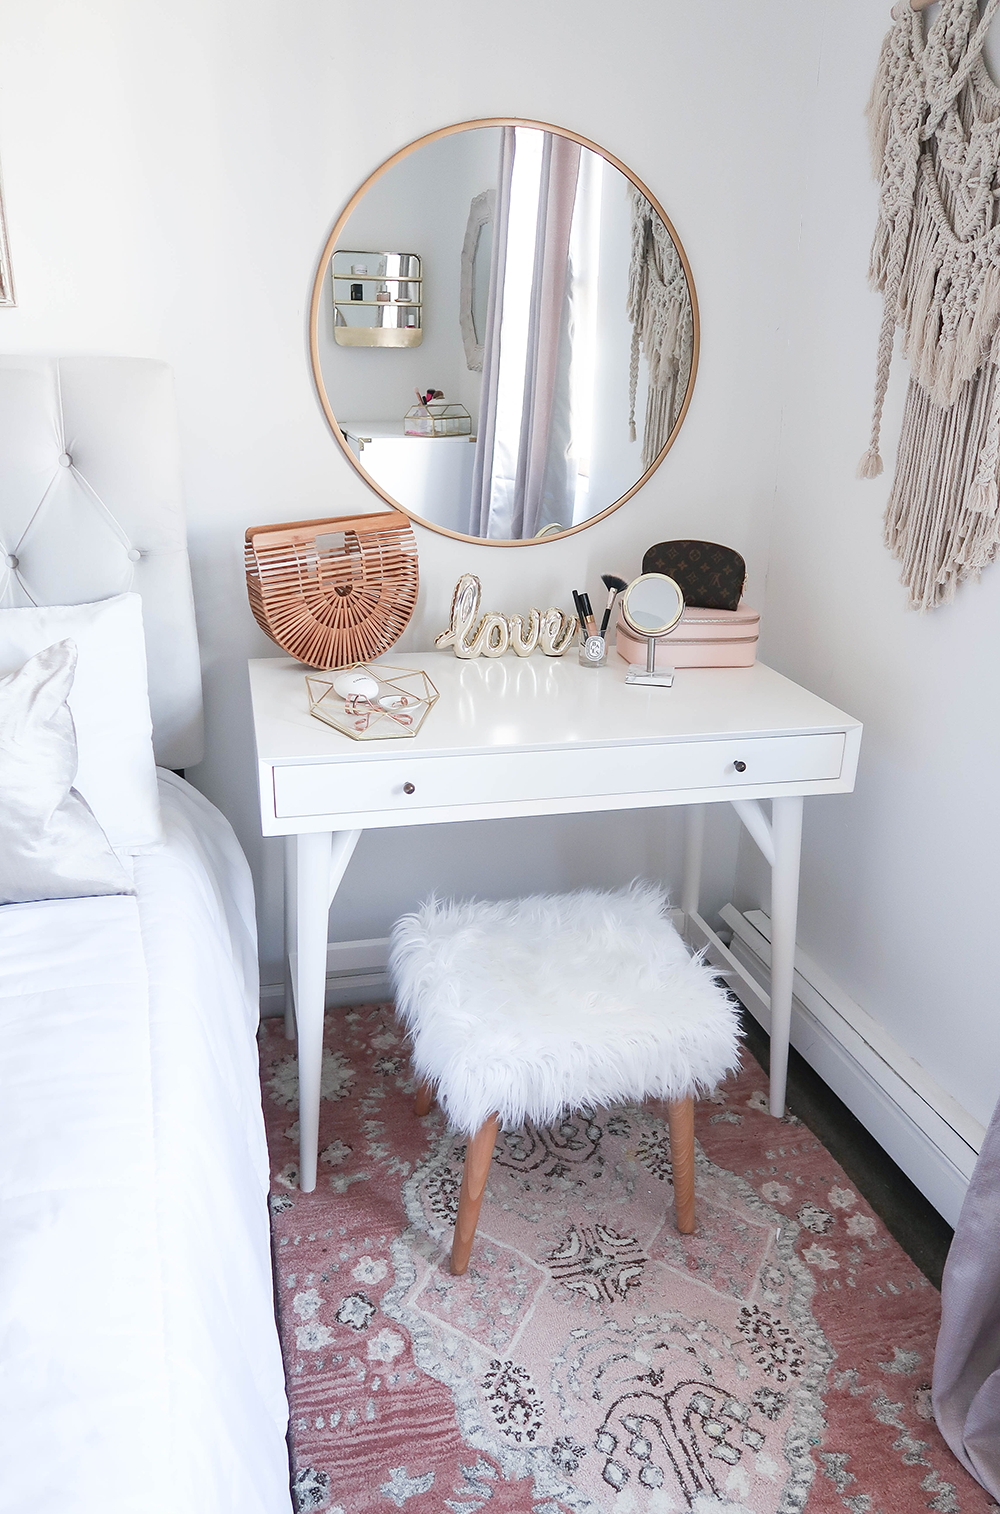 Styling A Vanity In A Small Space 2018 Home Home Decor